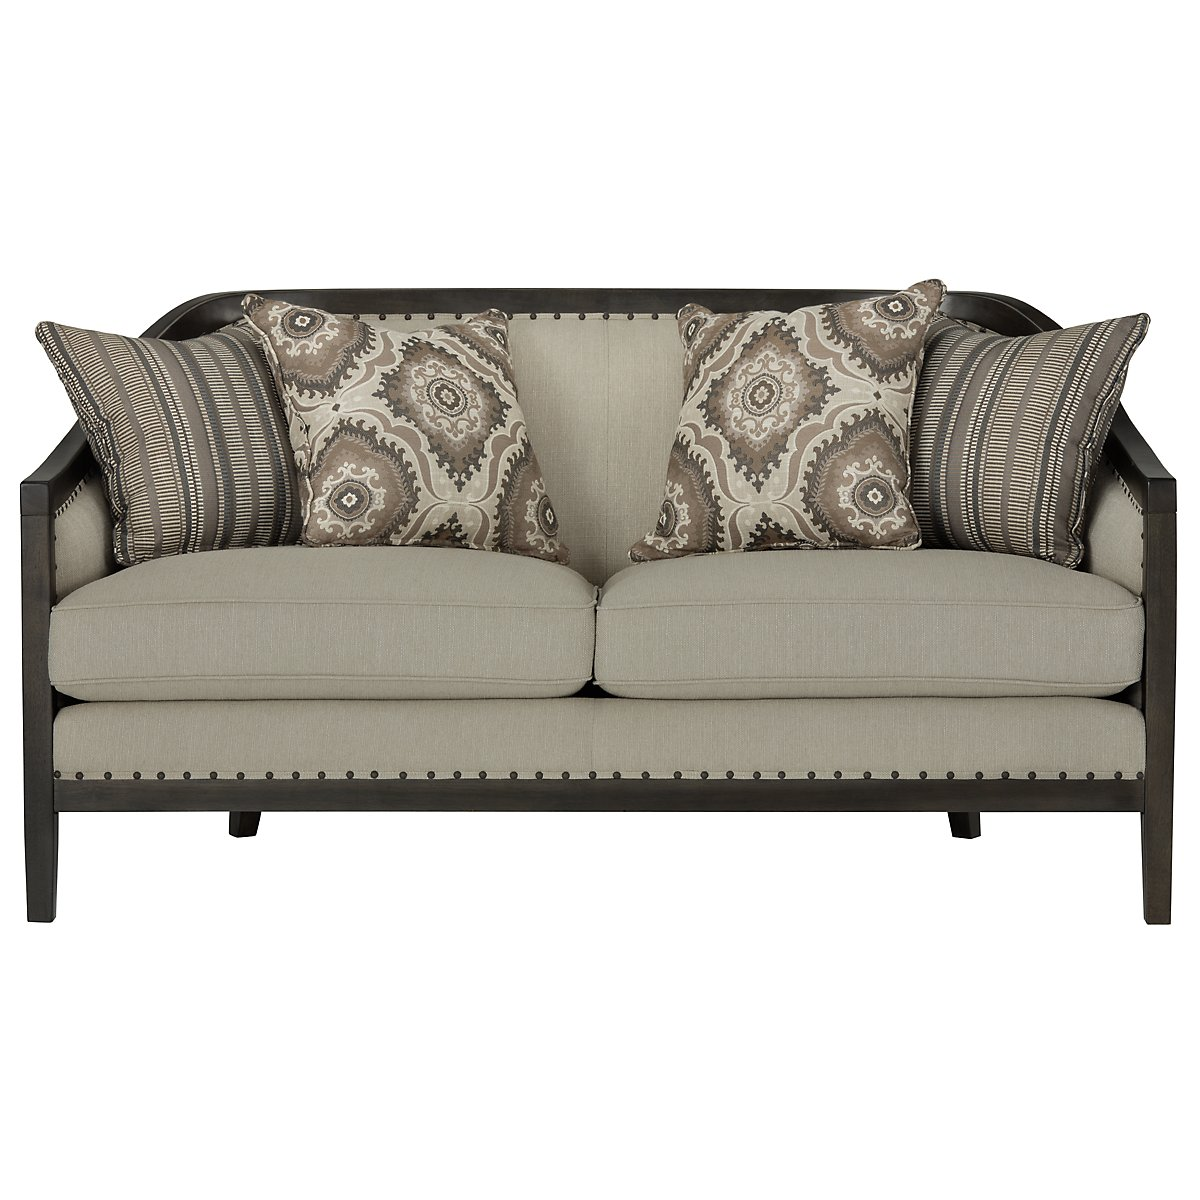 furnishings living emerald product home caprice loveseat waterlily fabric ship room quick by in carlton sh waterlilly